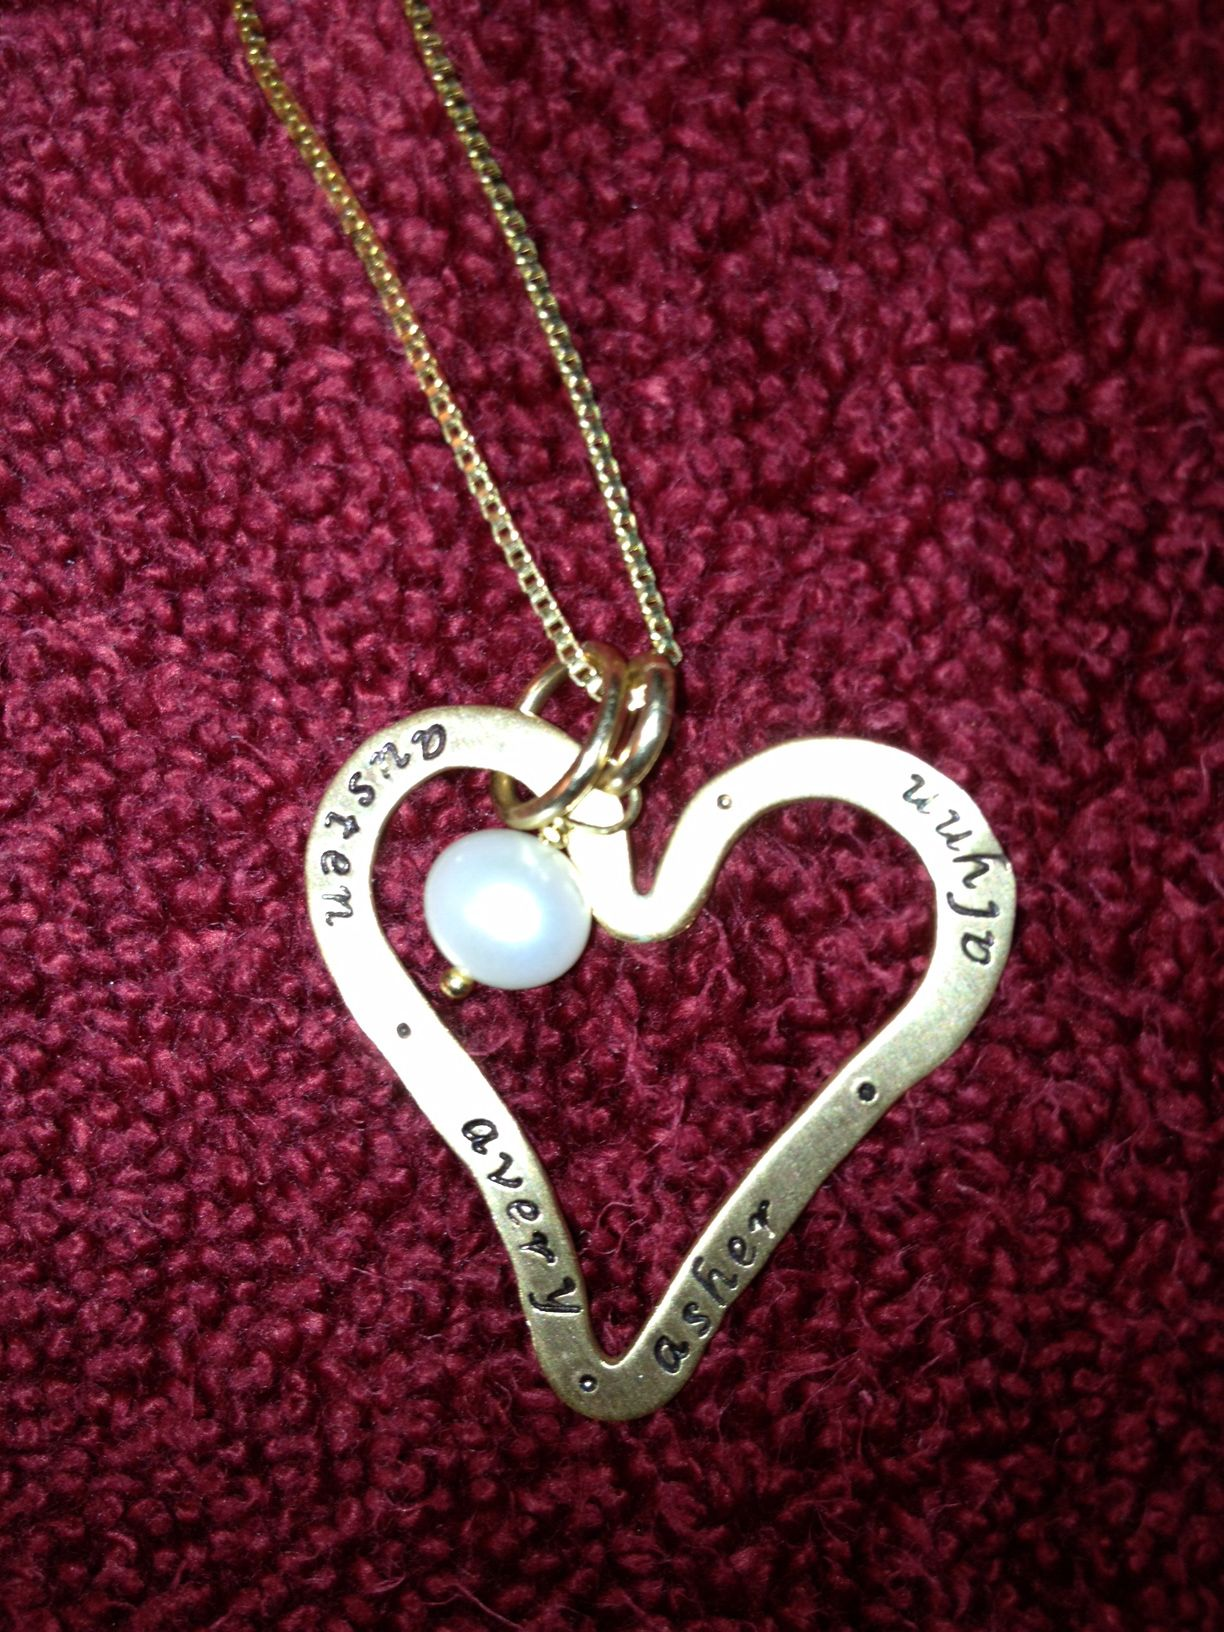 Necklace with the names of my four precious children!